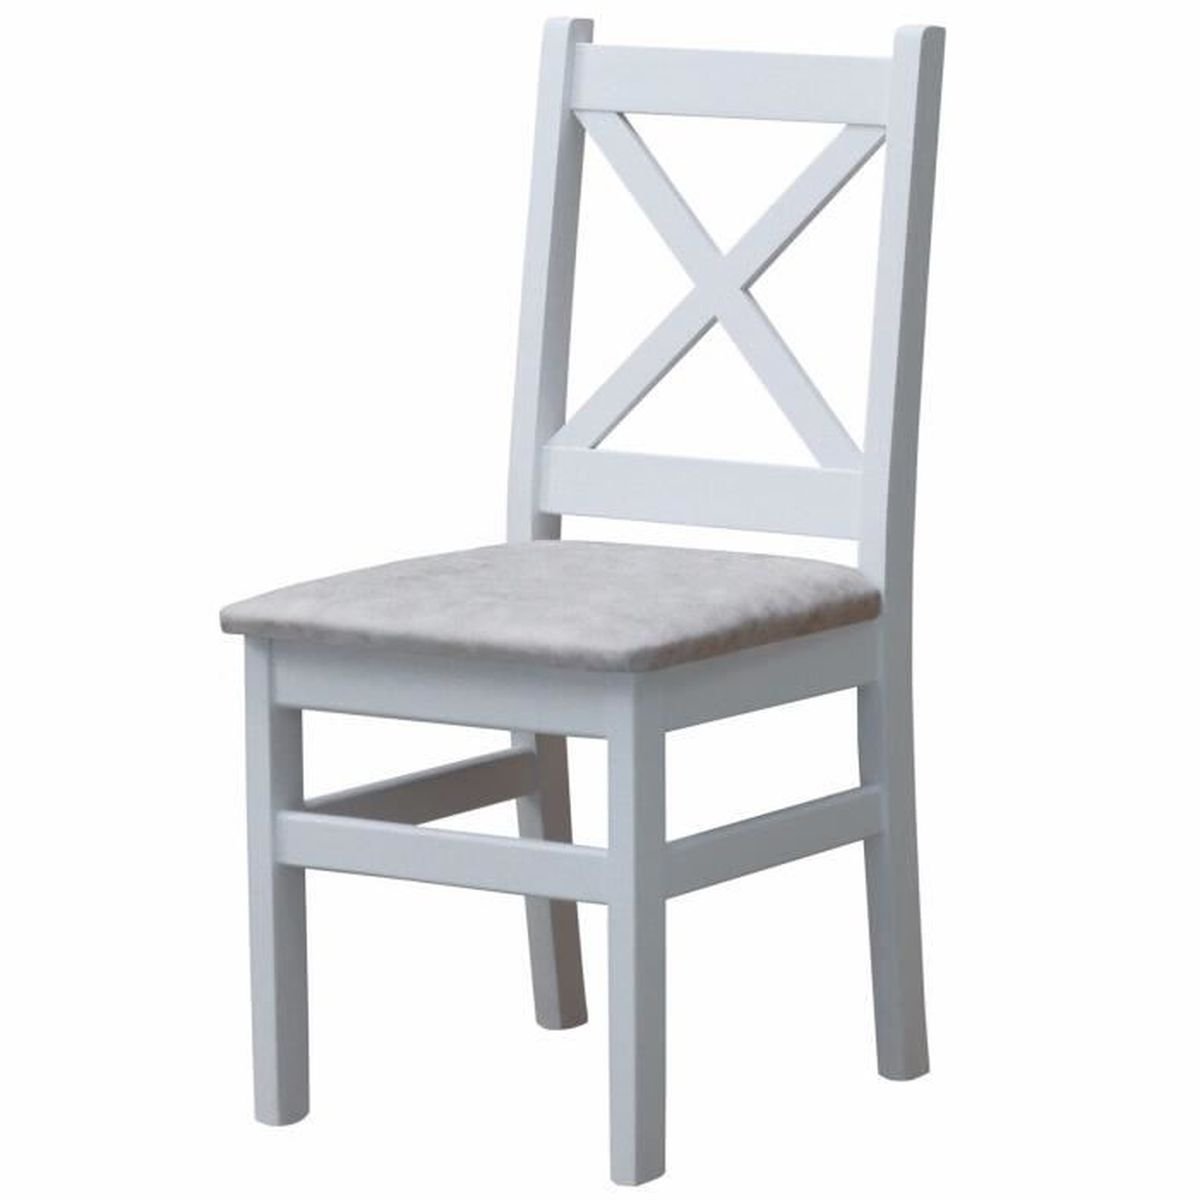 Rotin Chaise neuf blanc chaise ramasser empilable